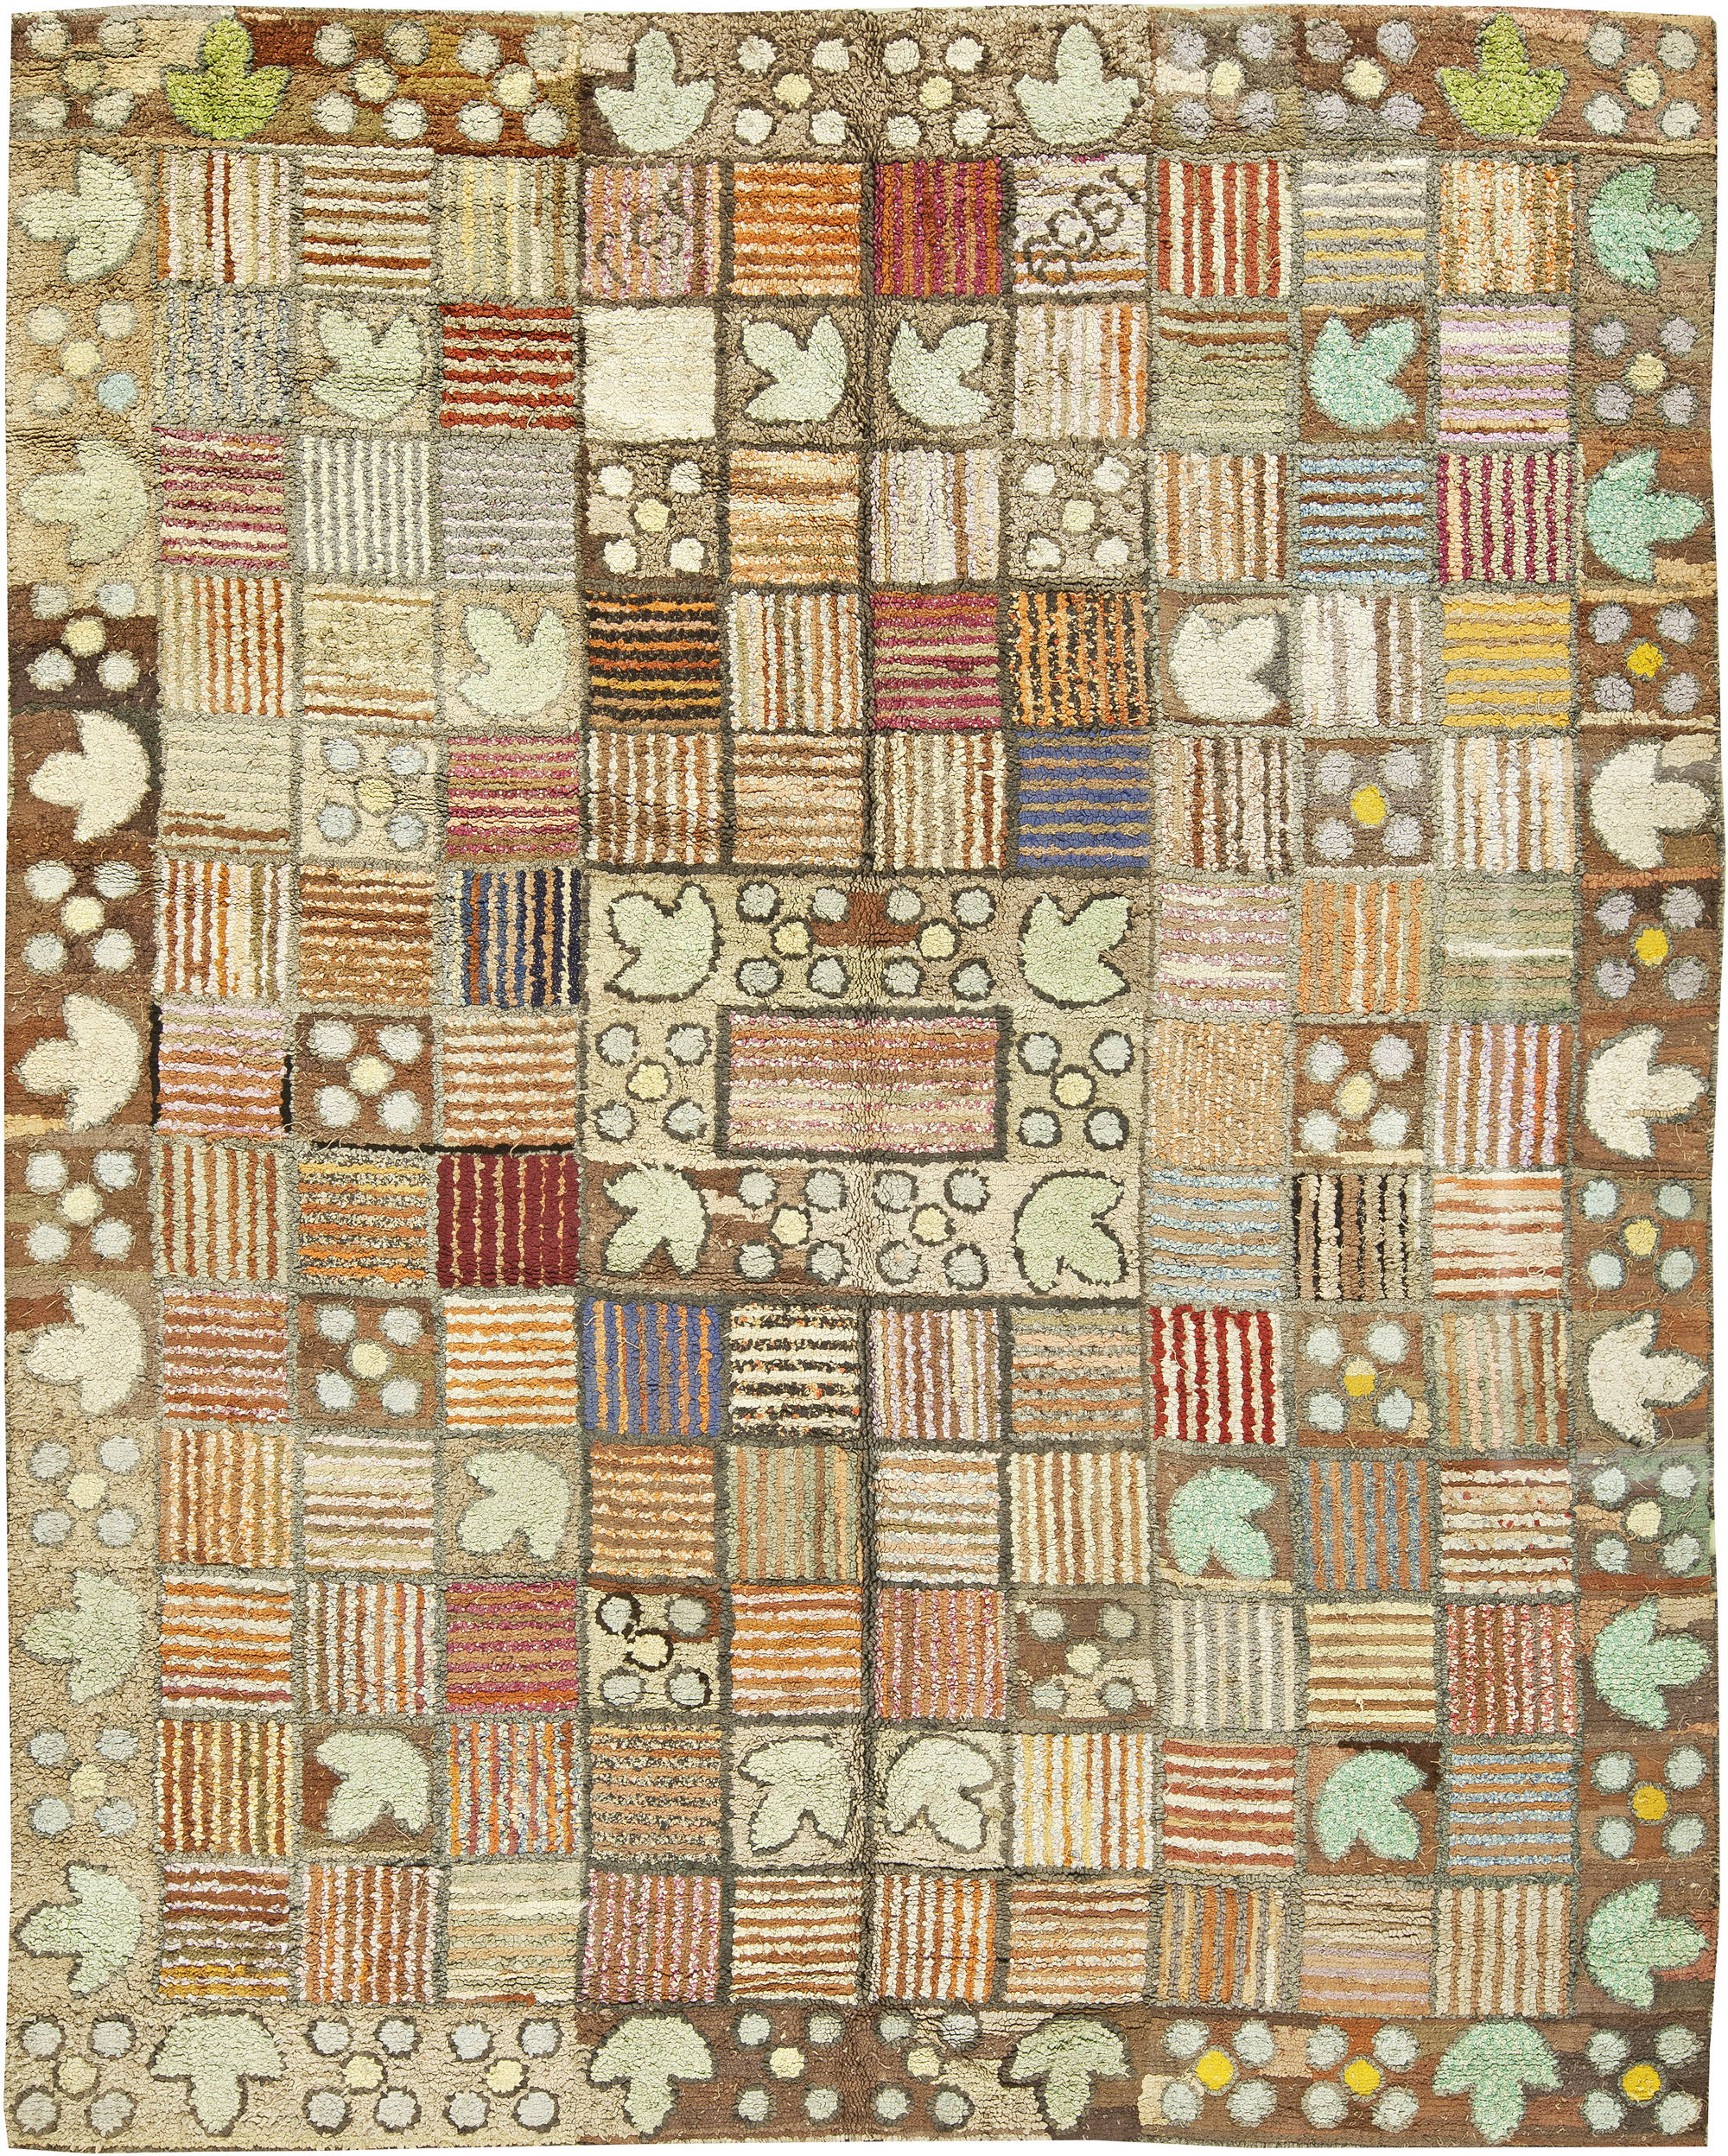 Hooked Rugs Rag Carpets For Sale Large Wool Floral Rug Nyc